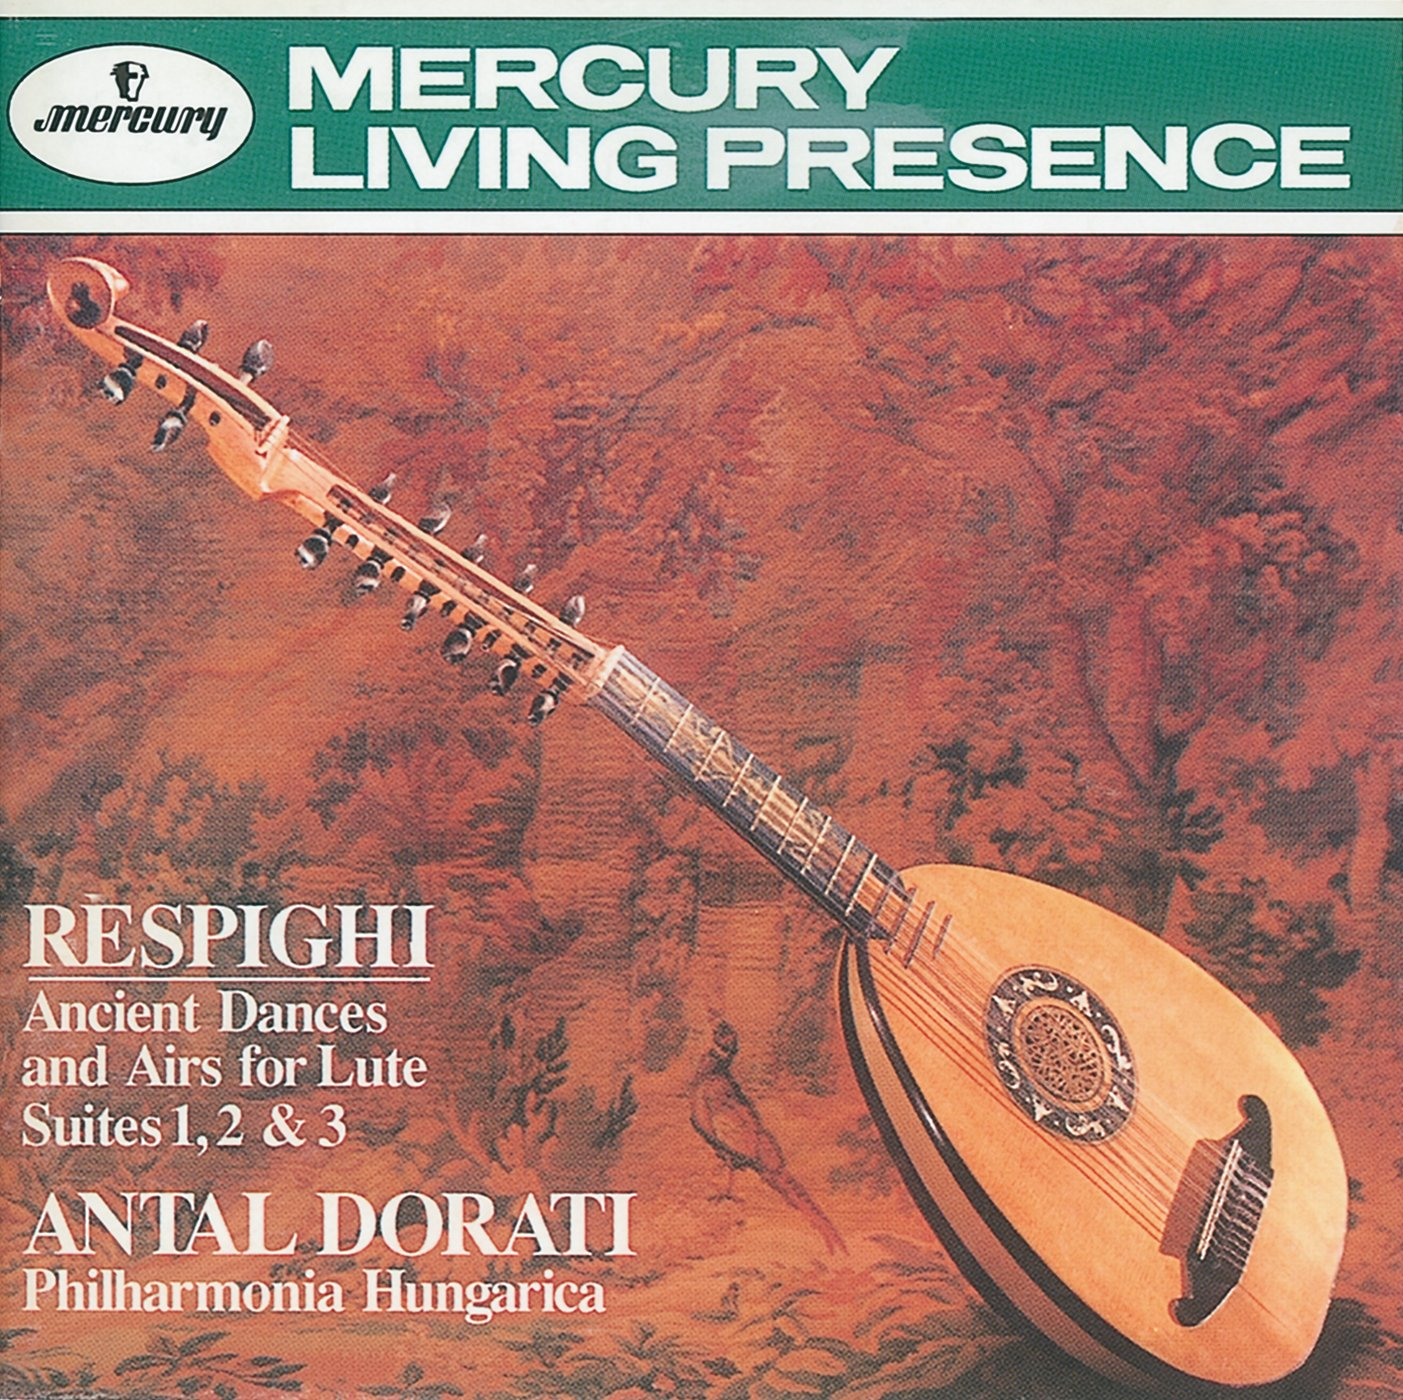 Respighi: Ancient Dances & Airs for Lute by Mercury